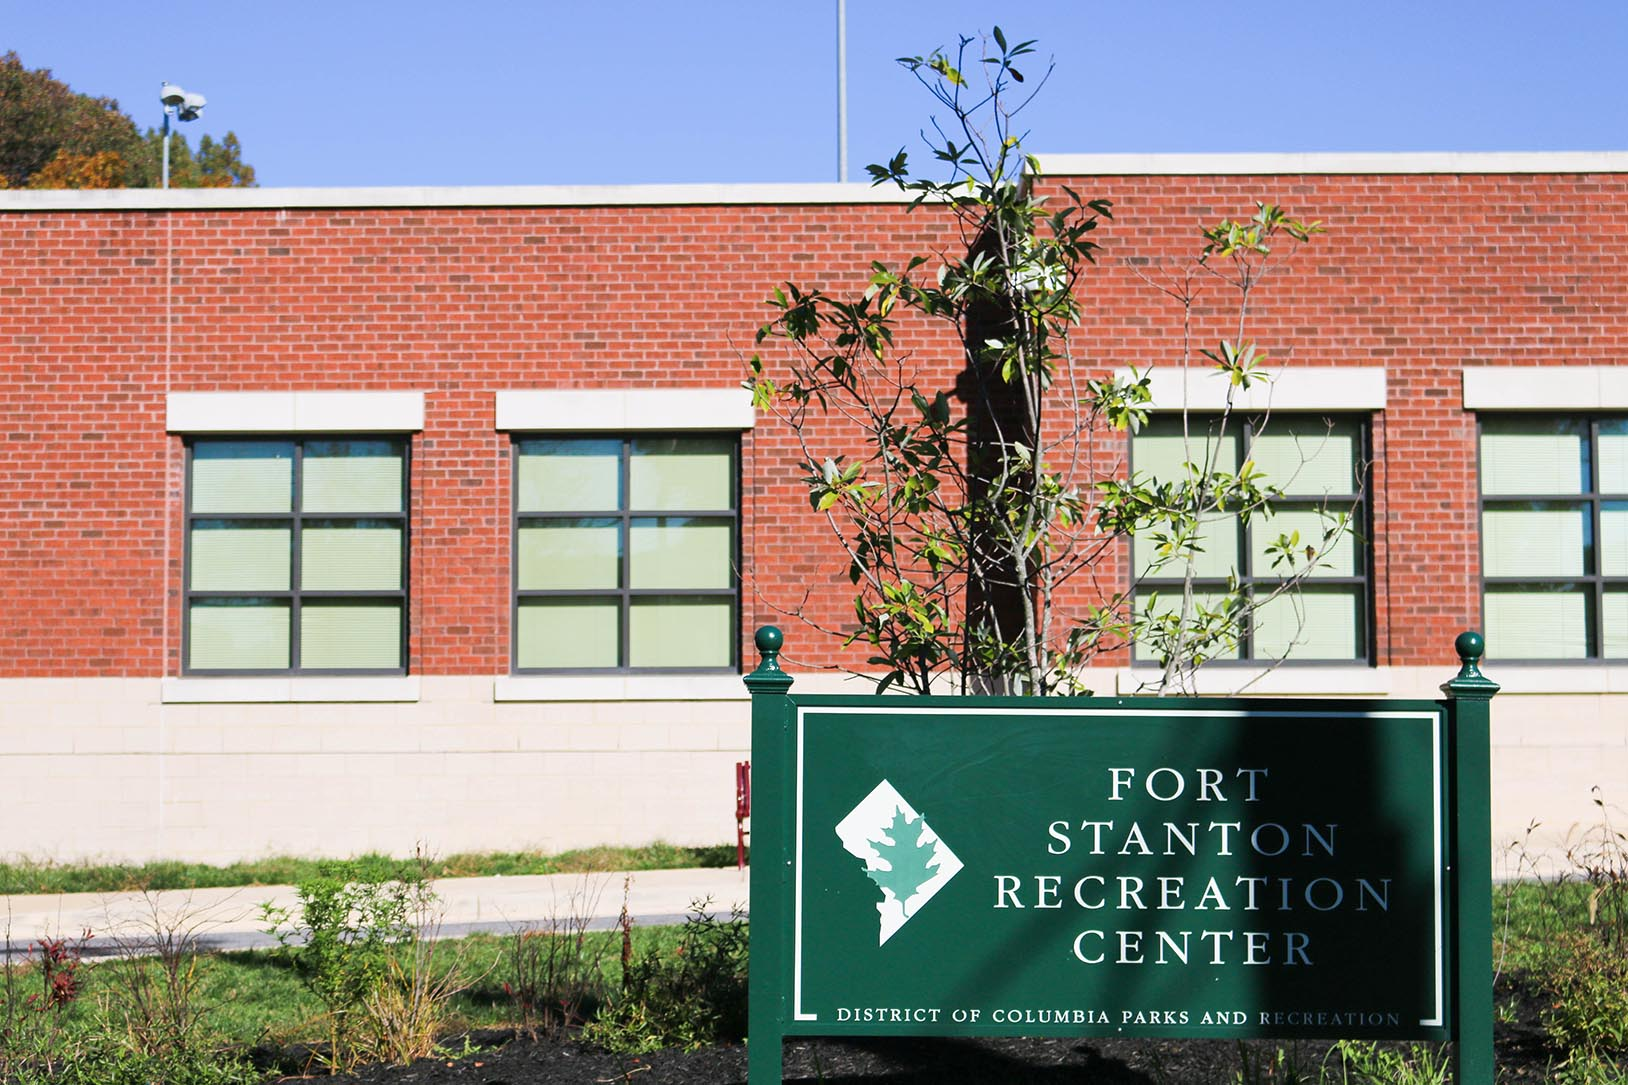 Fort Stanton Recreation Center in Anacostia, Washington, DC